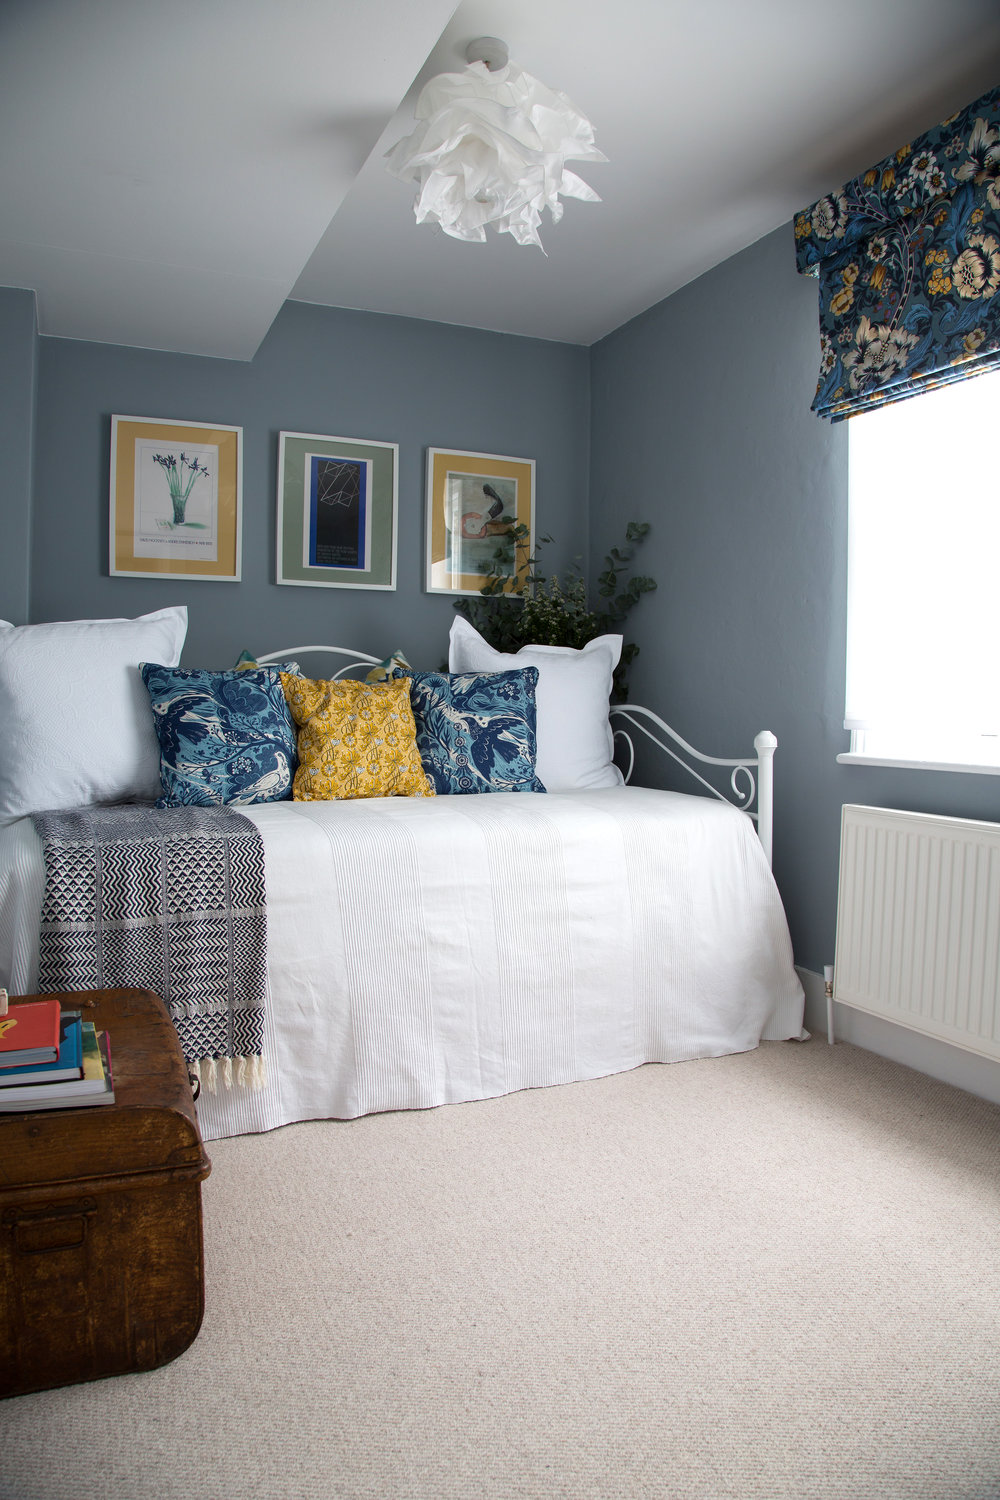 A Bright Bedroom in a Grade II Listed Holiday Home in Battle East Sussex – Interior Design by Smartstyle Interiors